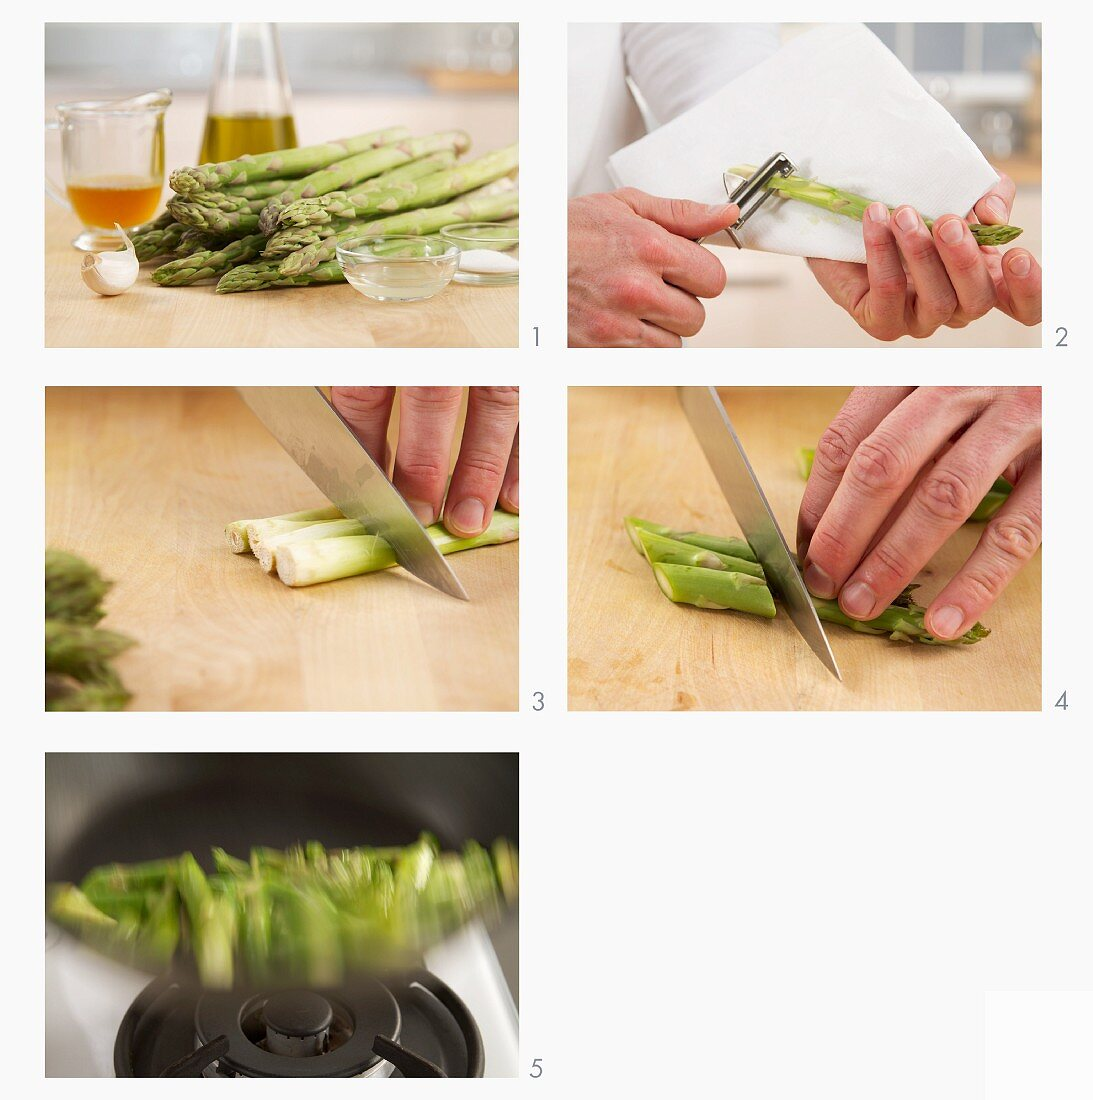 Green asparagus being cooked in a pan